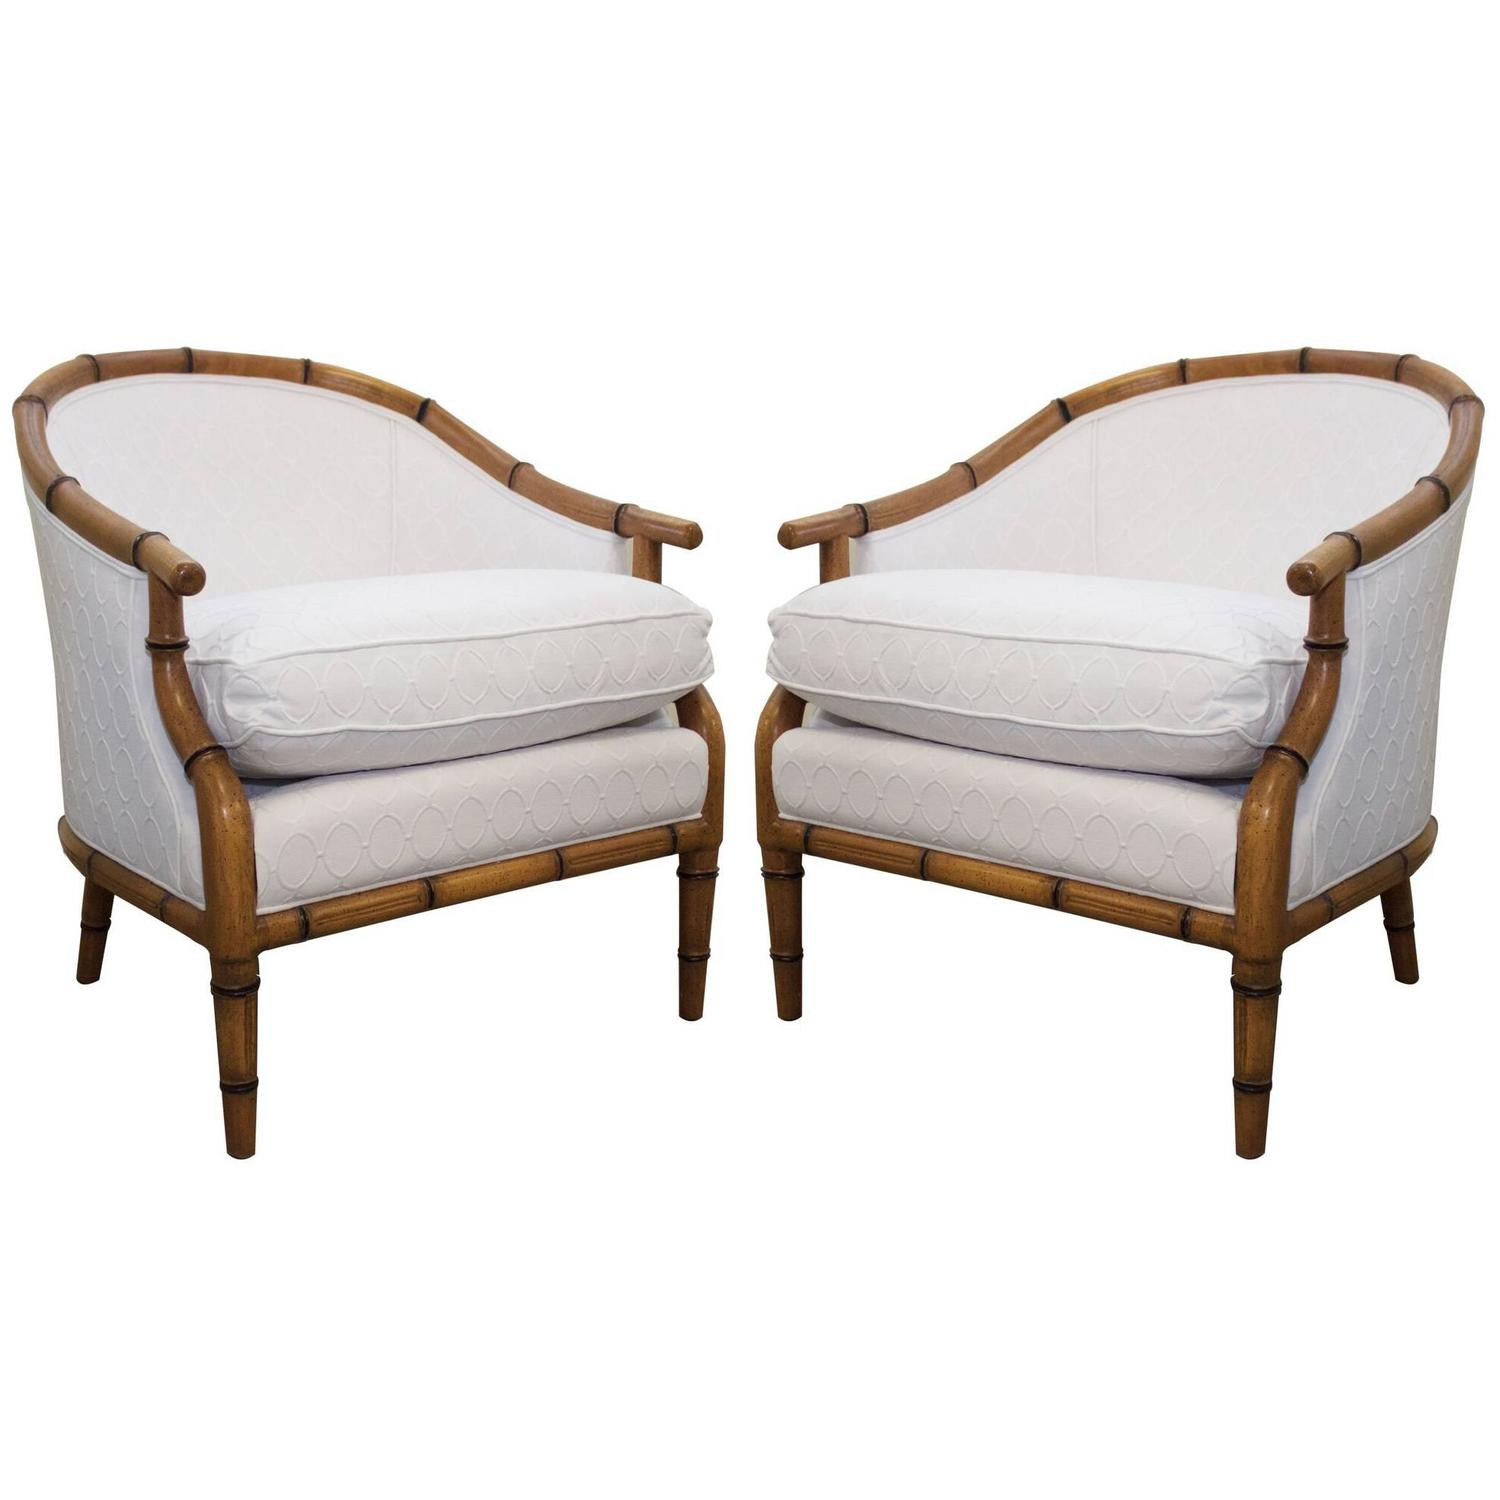 Pair Of Faux Bamboo Chairs By Century Furniture At 1stdibs